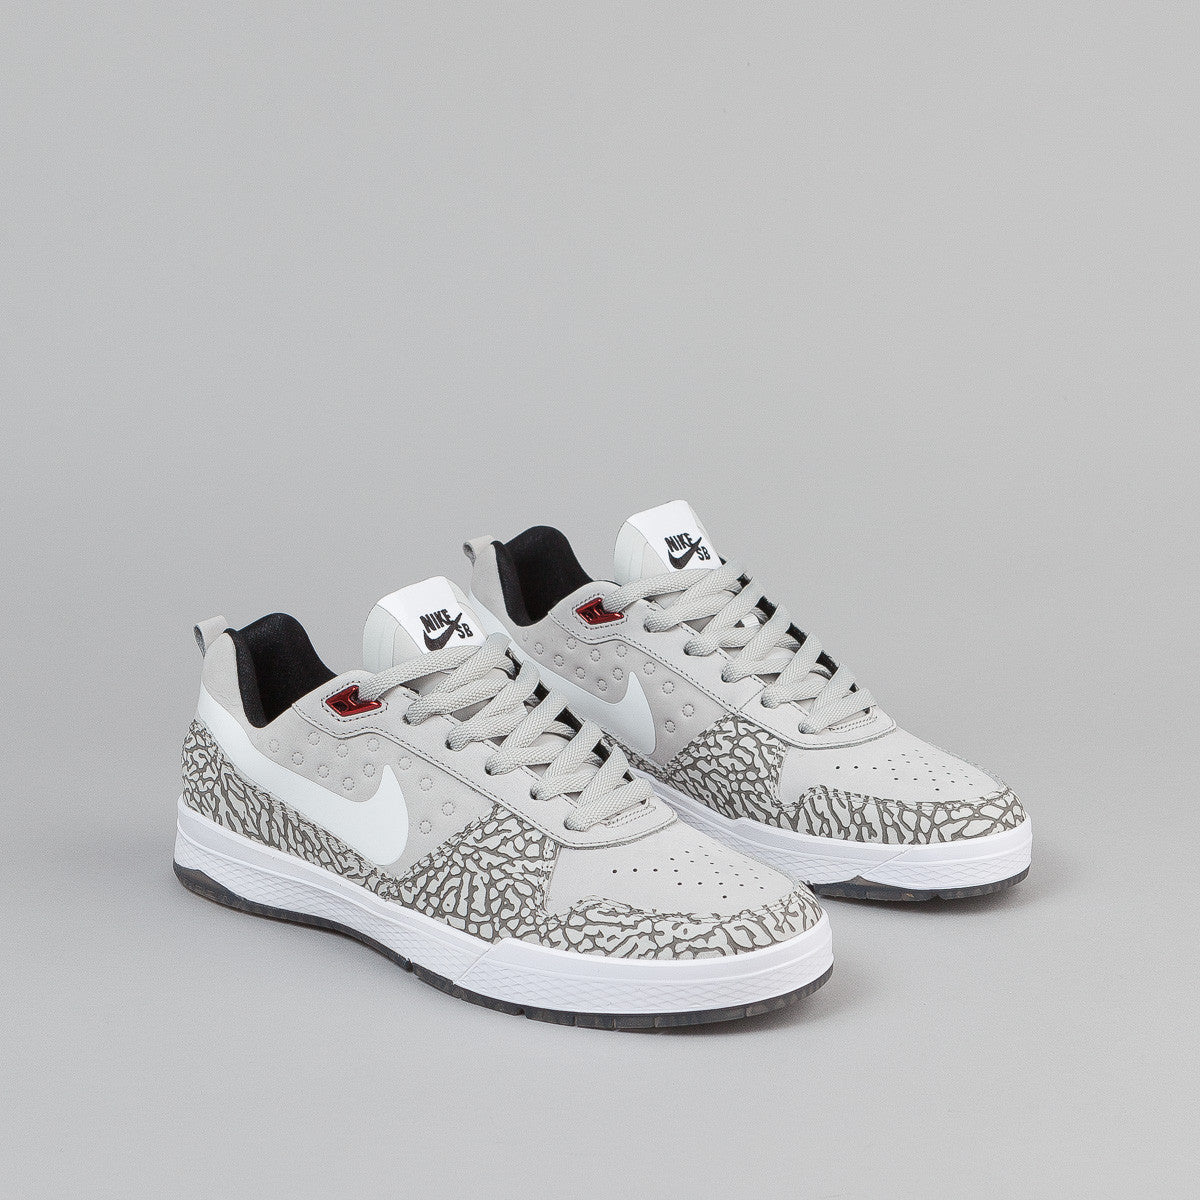 Nike SB x Jordan P Rod 9 Elite QS - Sterling / White / Black / Deep Red